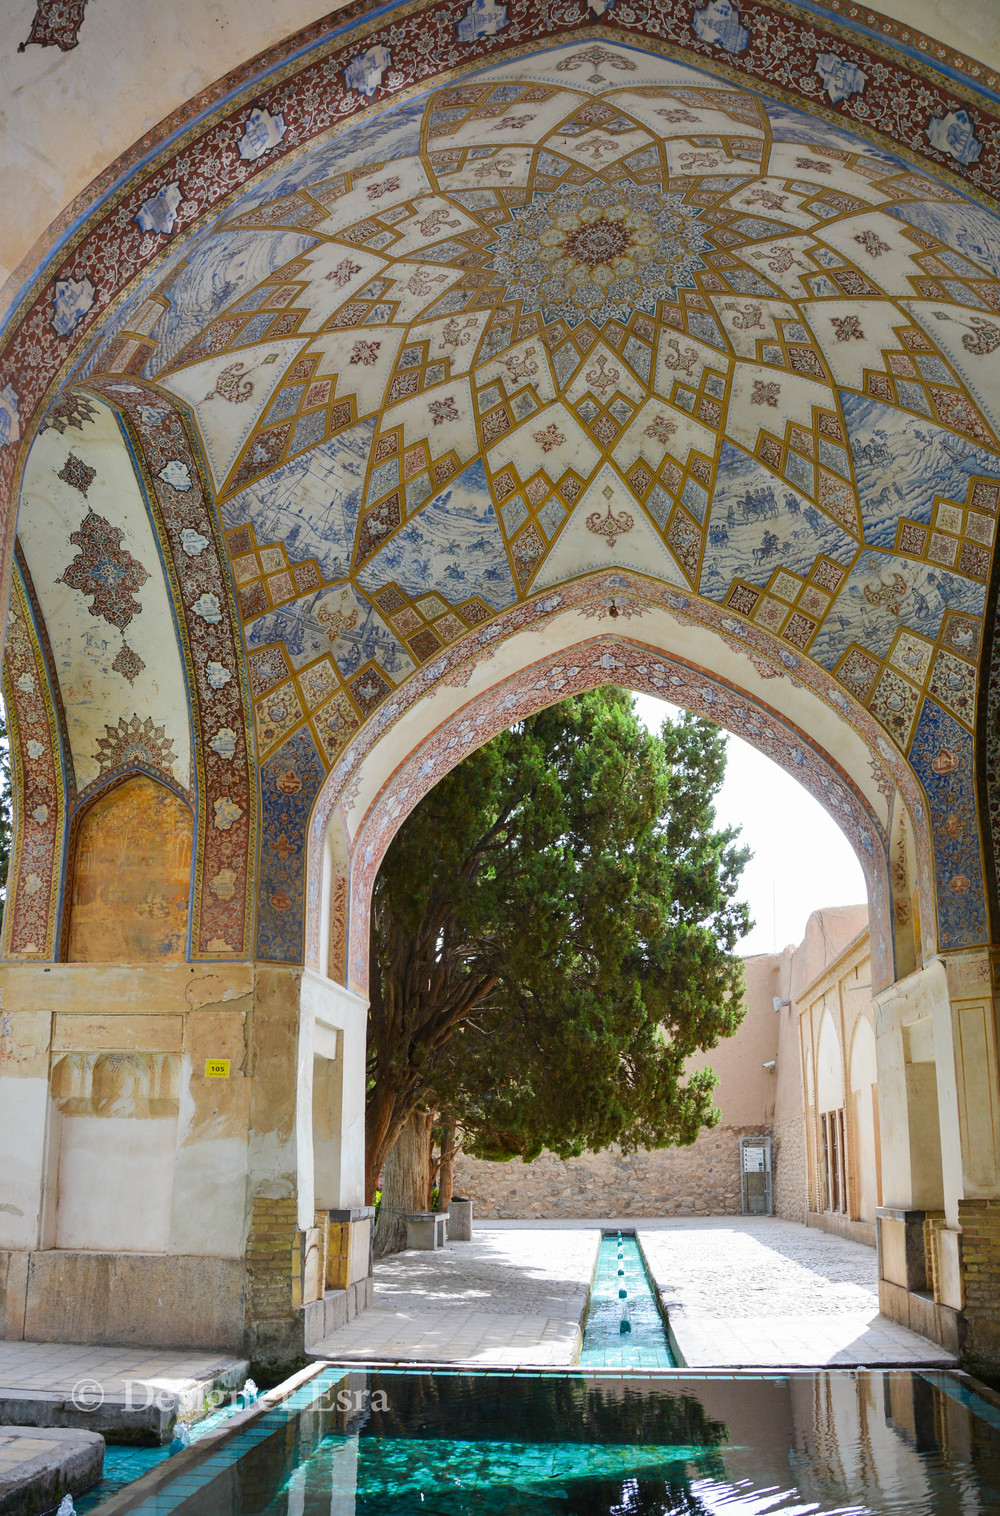 Islamic Geometry in the Fin Garden in Iran